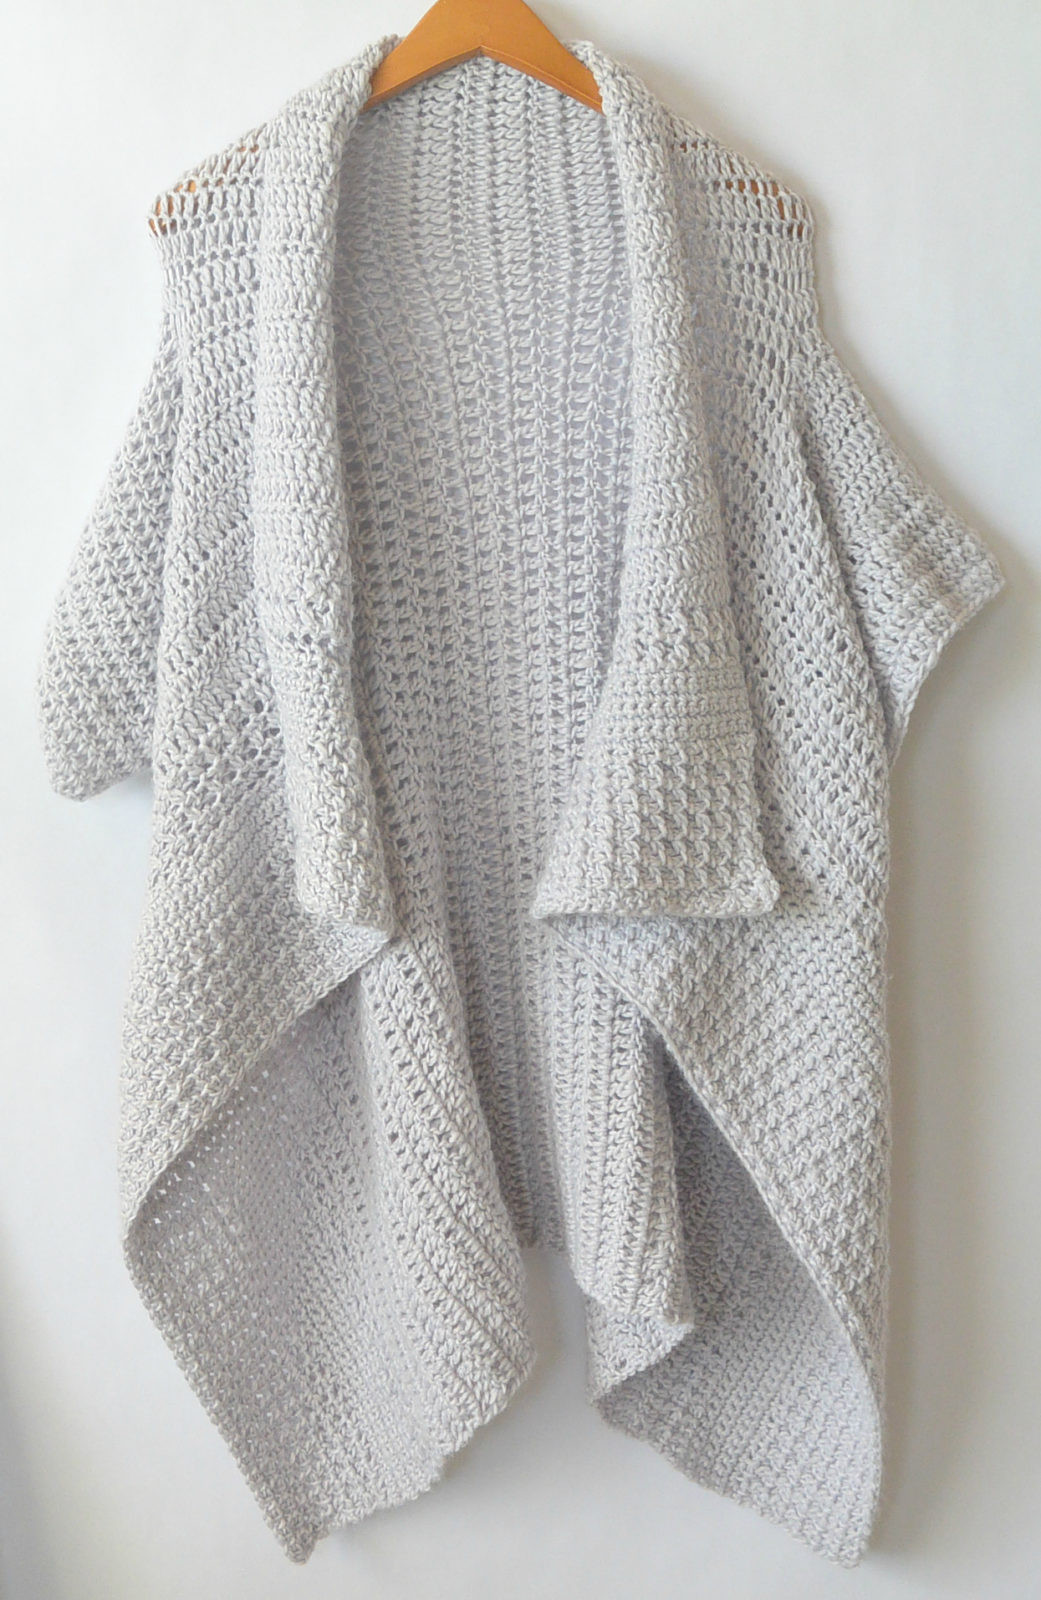 Crochet Cardigan Sweater Fresh Cascading Kimono Cardigan Crochet Pattern – Mama In A Stitch Of Luxury 41 Ideas Crochet Cardigan Sweater